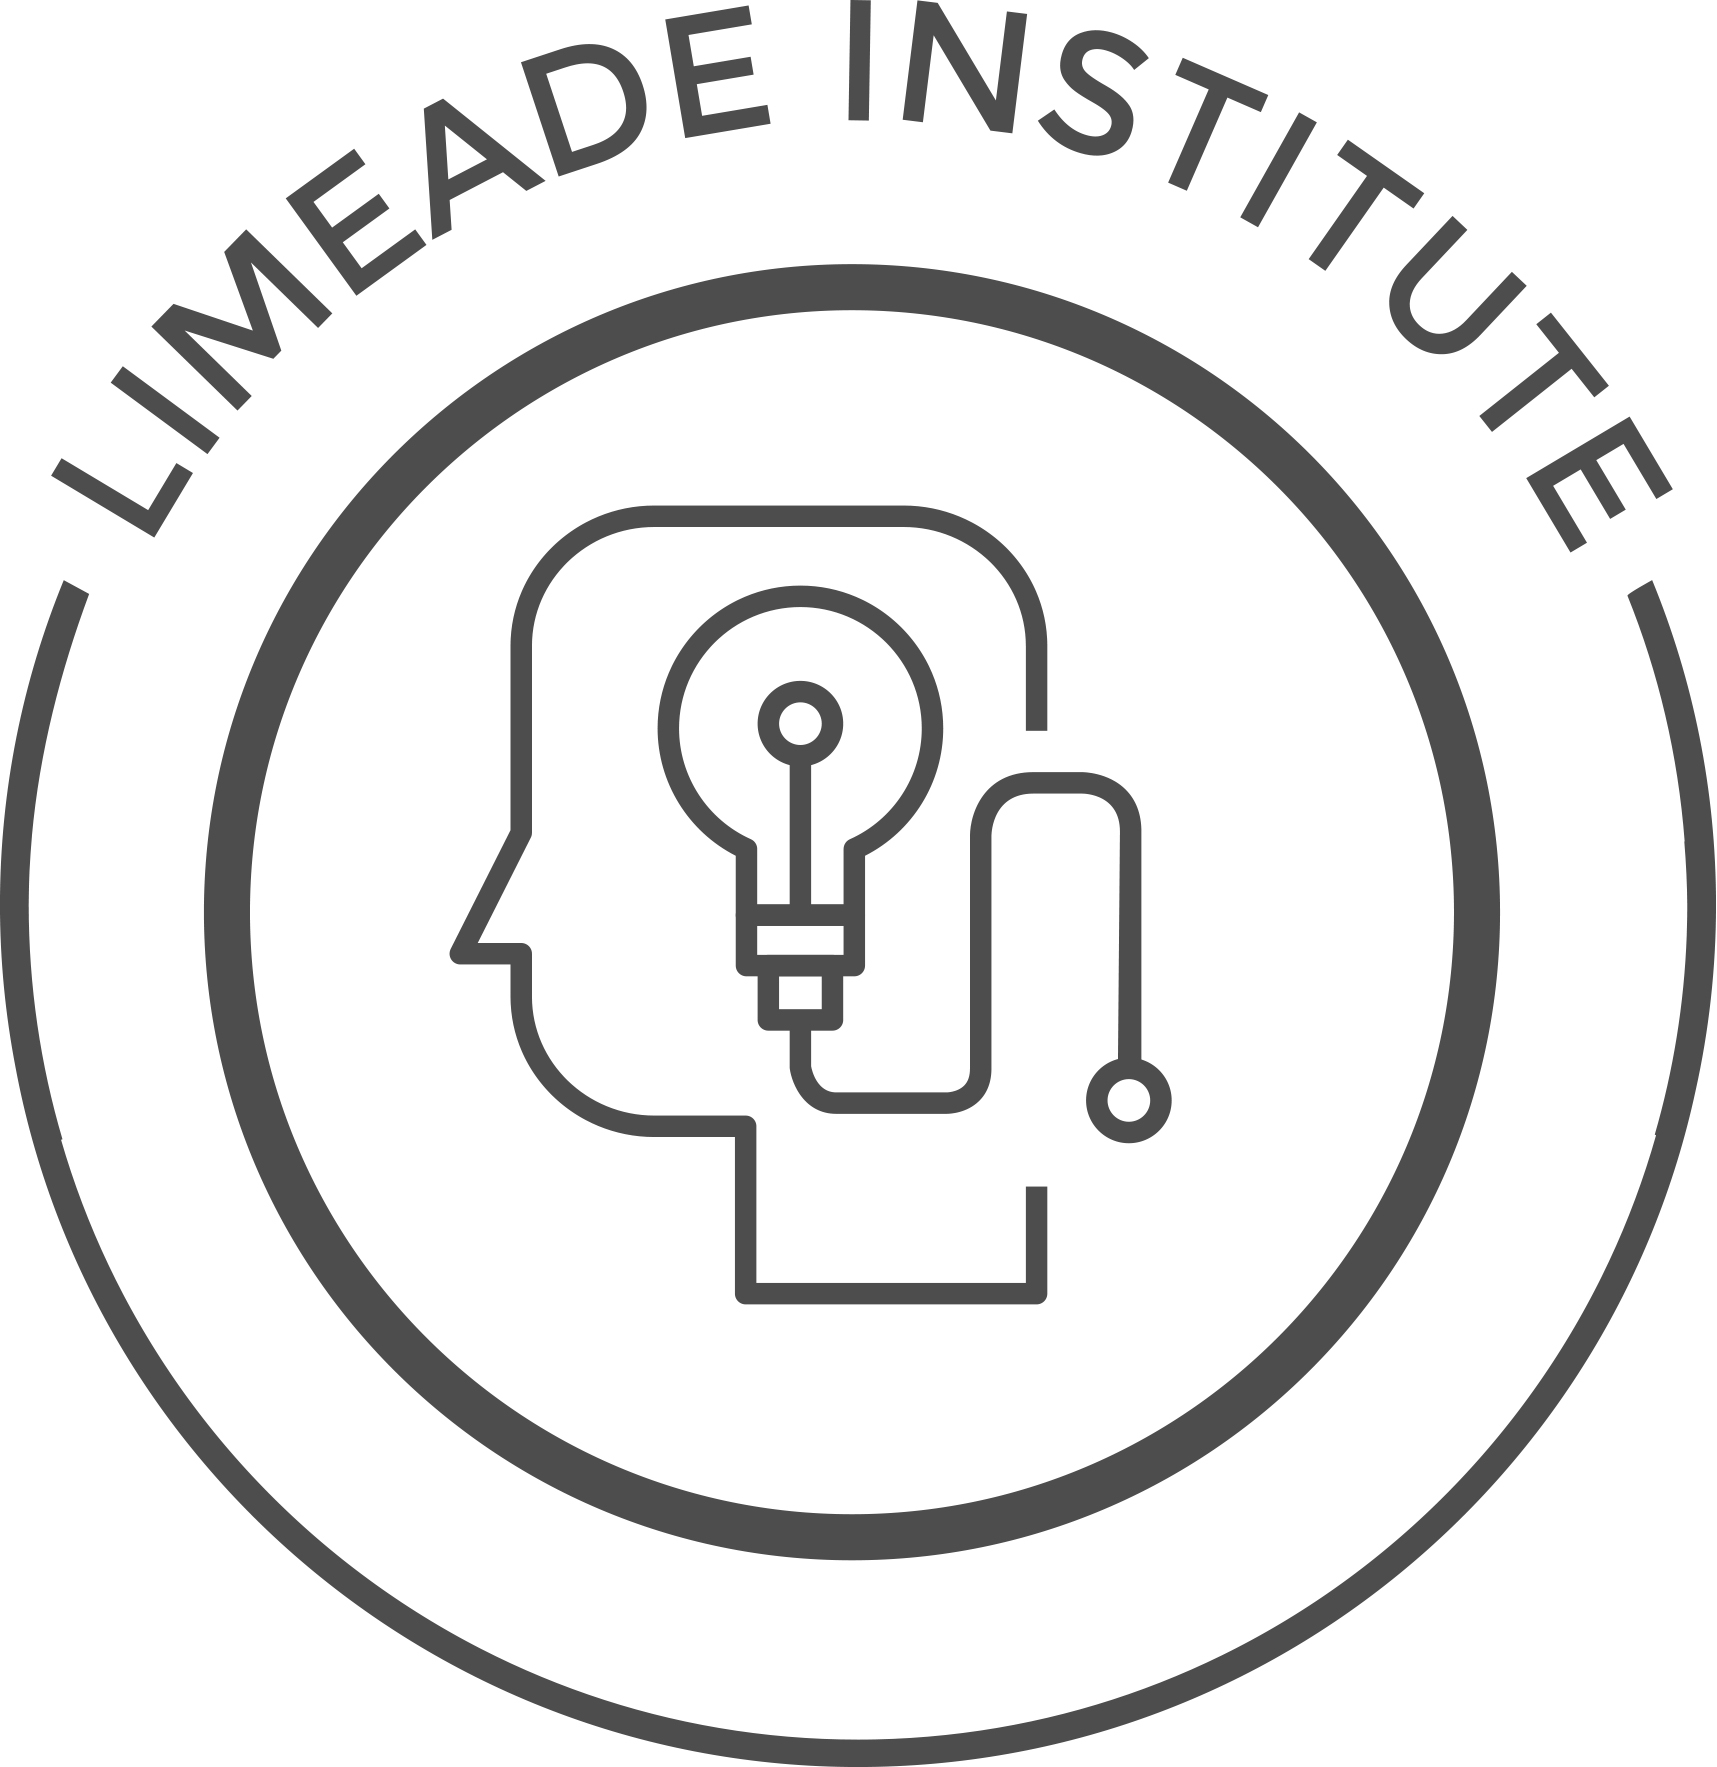 new limeade institute will share research to improve well